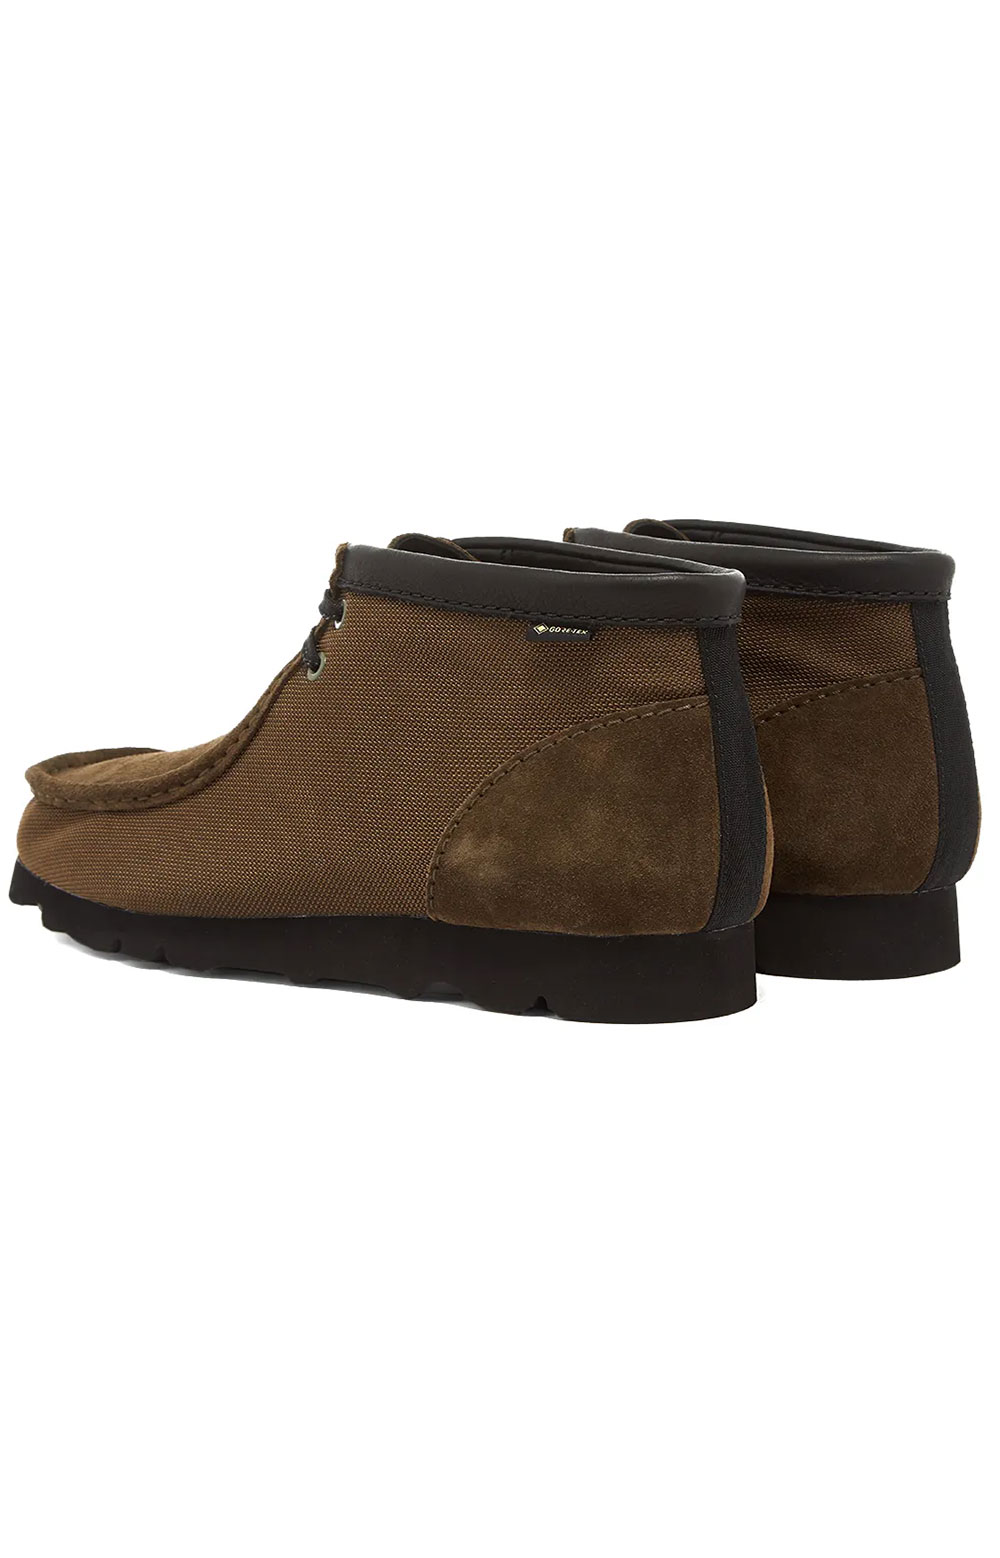 (26154788) Wallabee GTX Boots - Olive Textile 3